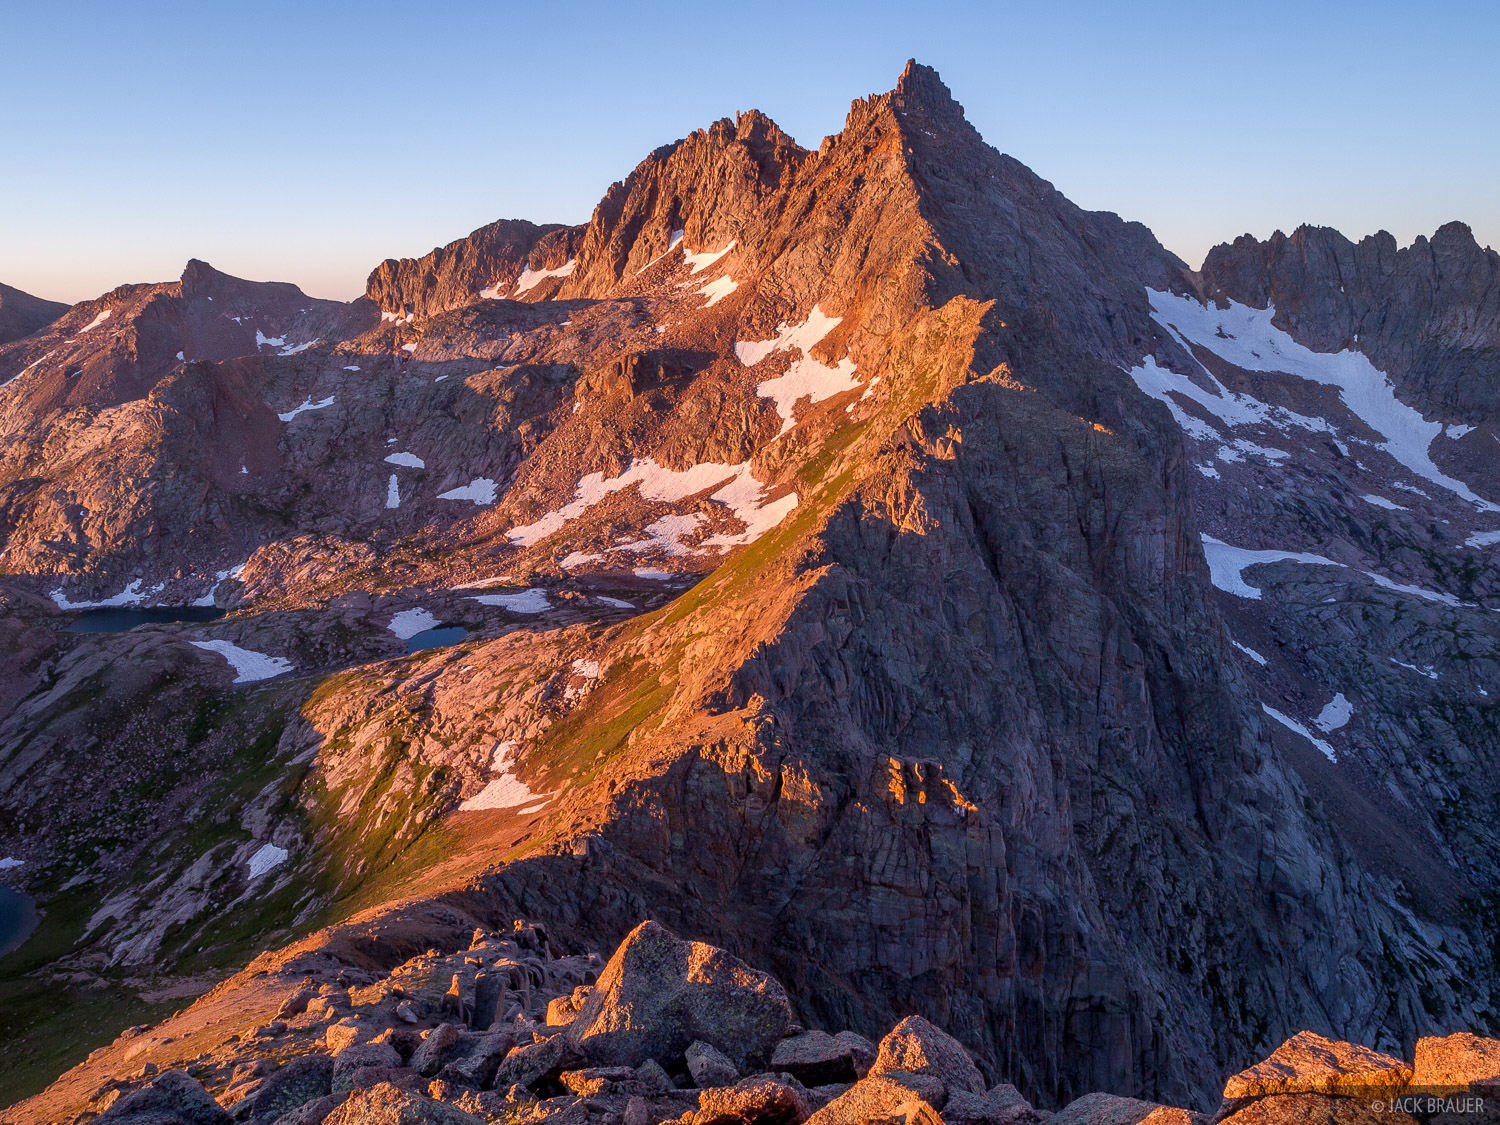 Colorado, Needle Mountains, San Juan Mountains, Weminuche Wilderness, Knife Point, sunrise, 14er, Sunlight Peak, photo